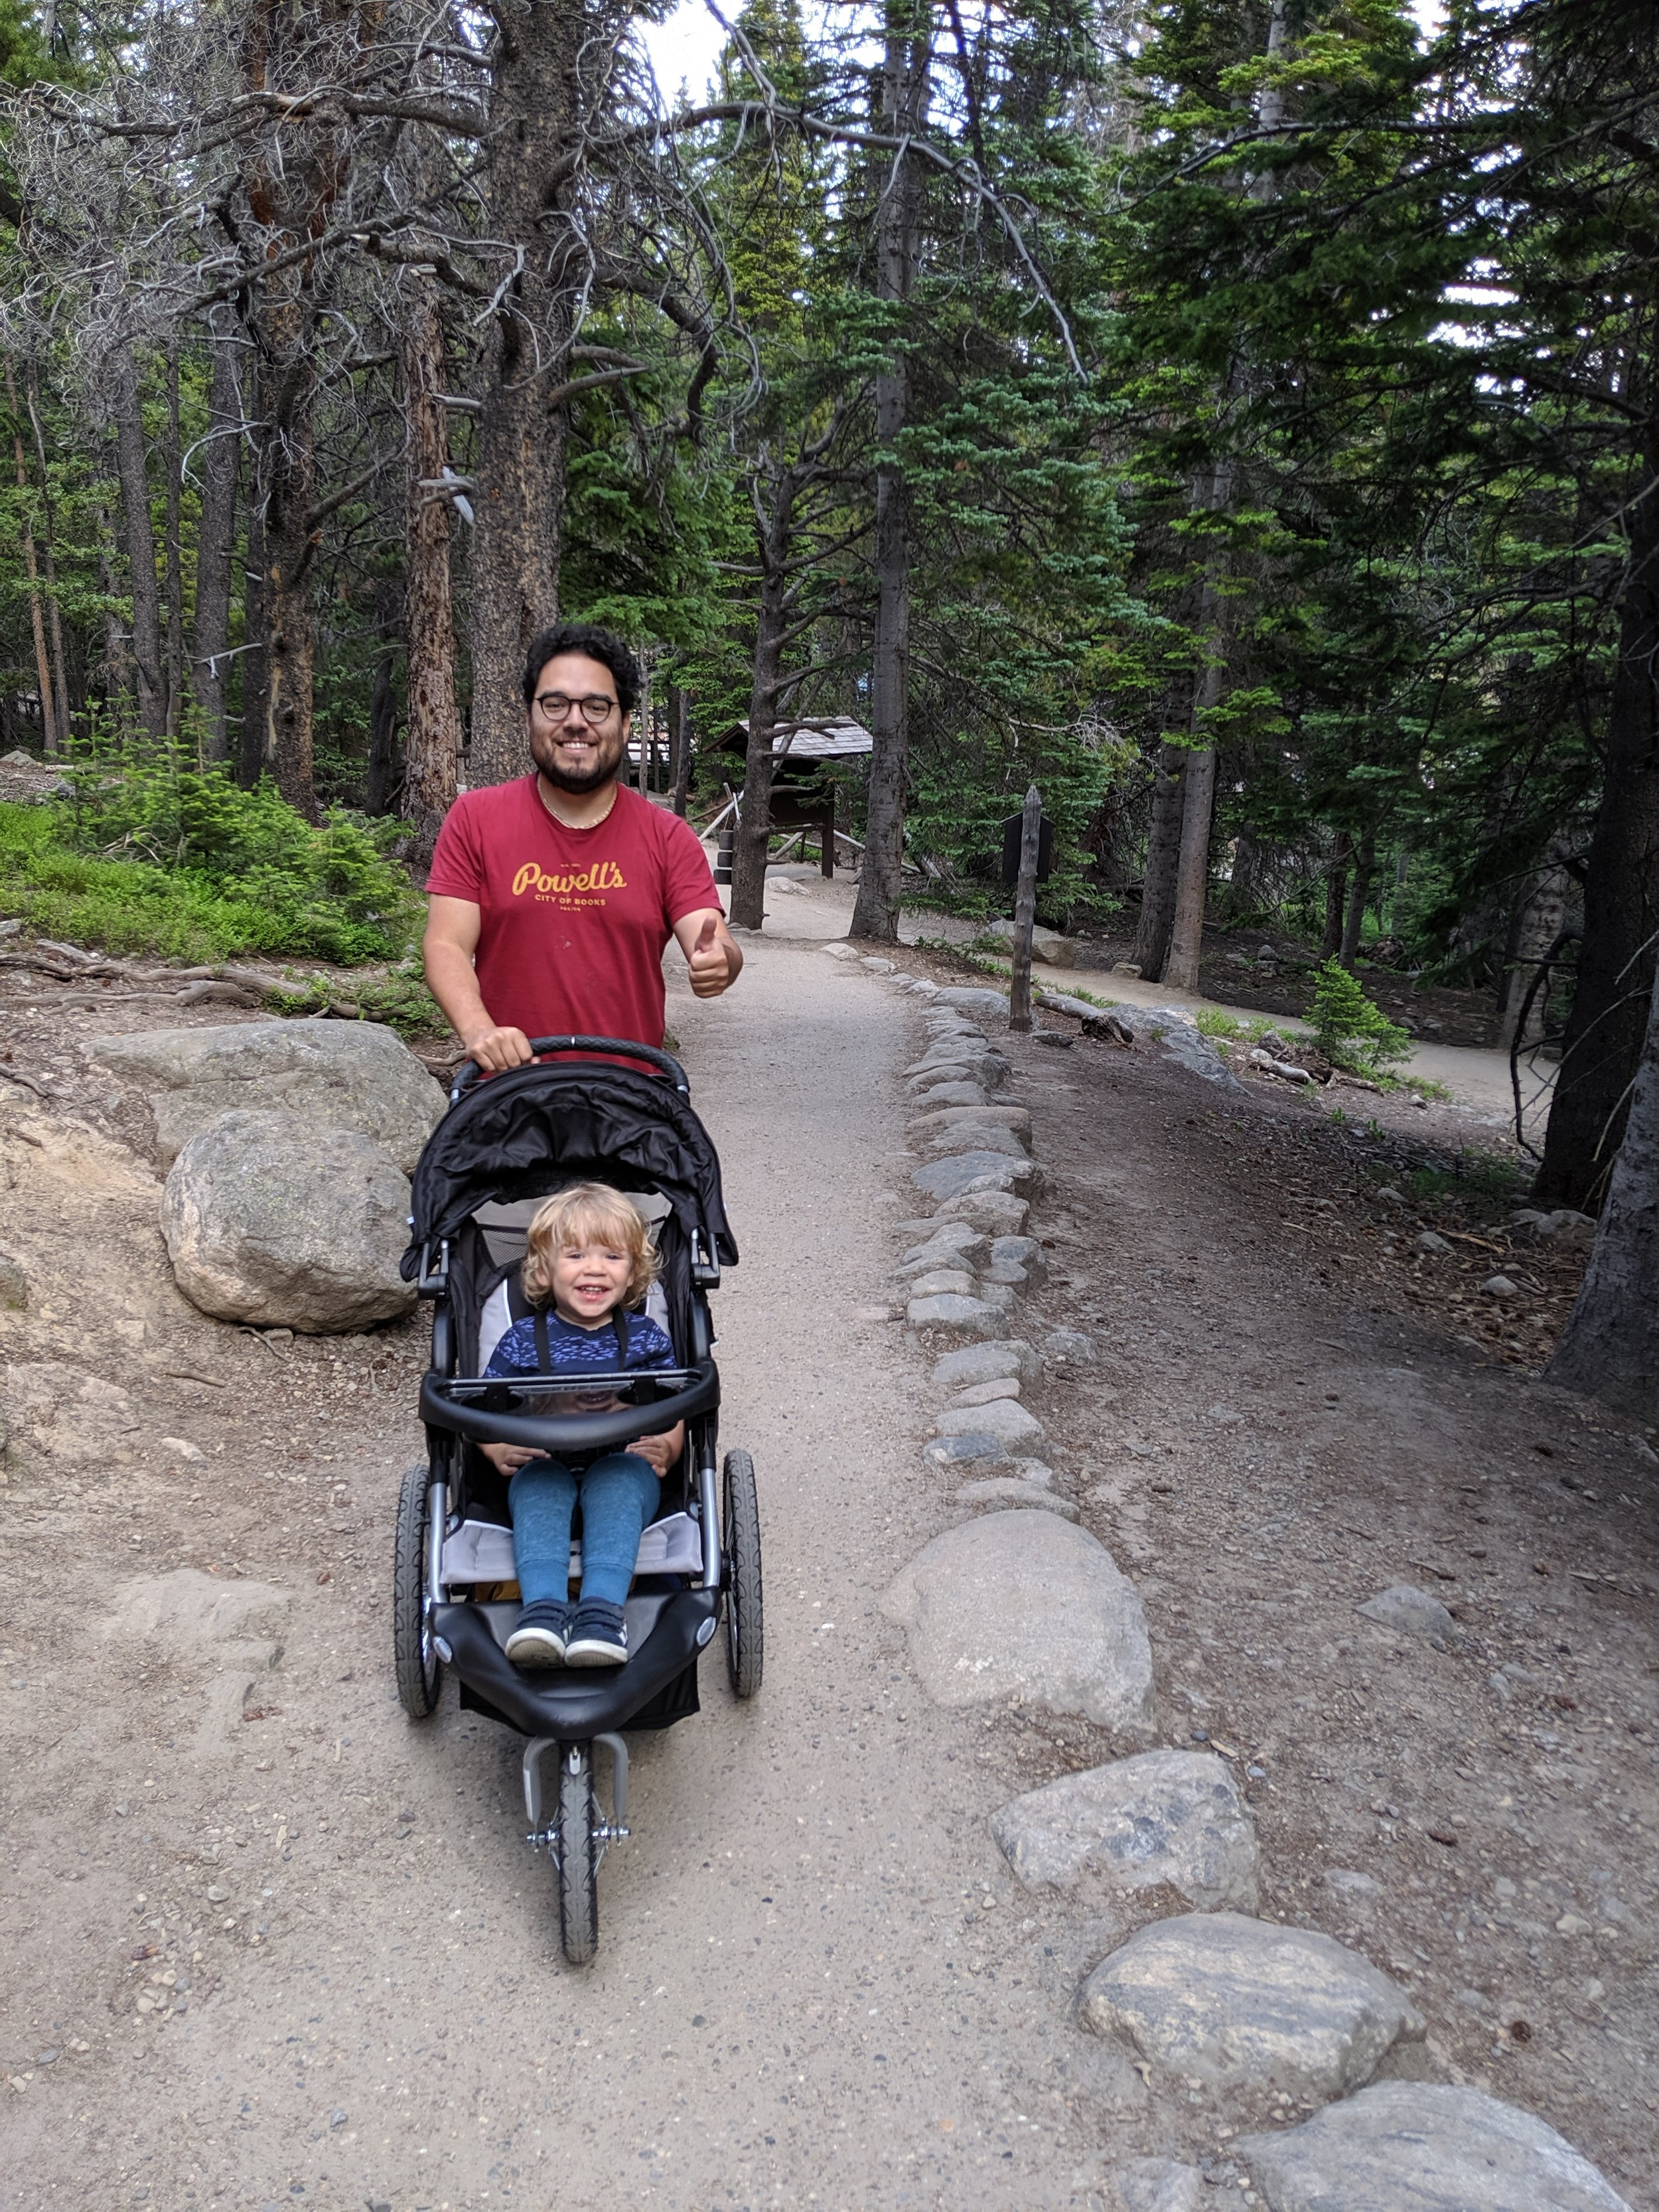 Ries and his happy rider in Rocky Mountain National Park, Estes Park, Colorado.